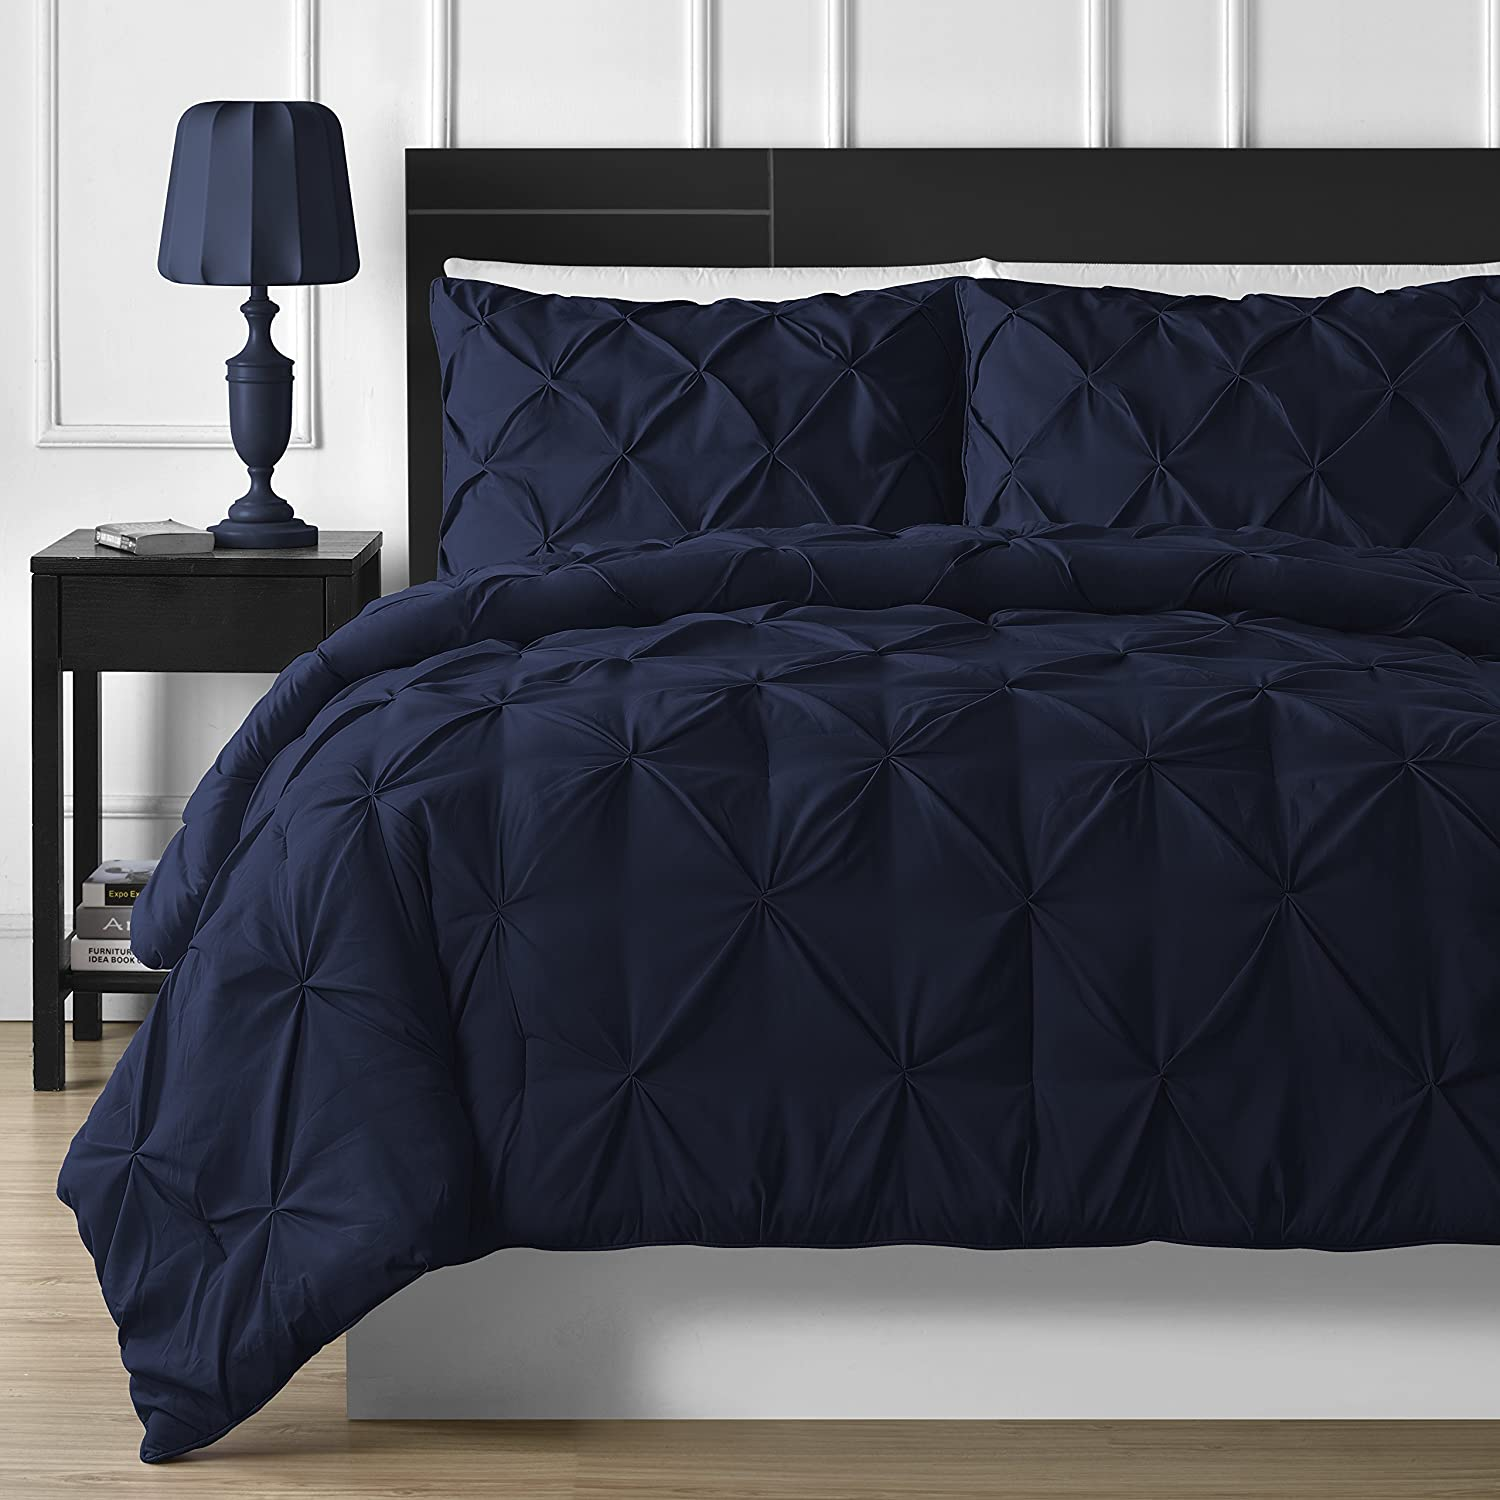 Bed in a Bag 7-PC Comfy Bedding Durable Stitching Pinch Pleat Comforter and Sheet Set Navy Blue